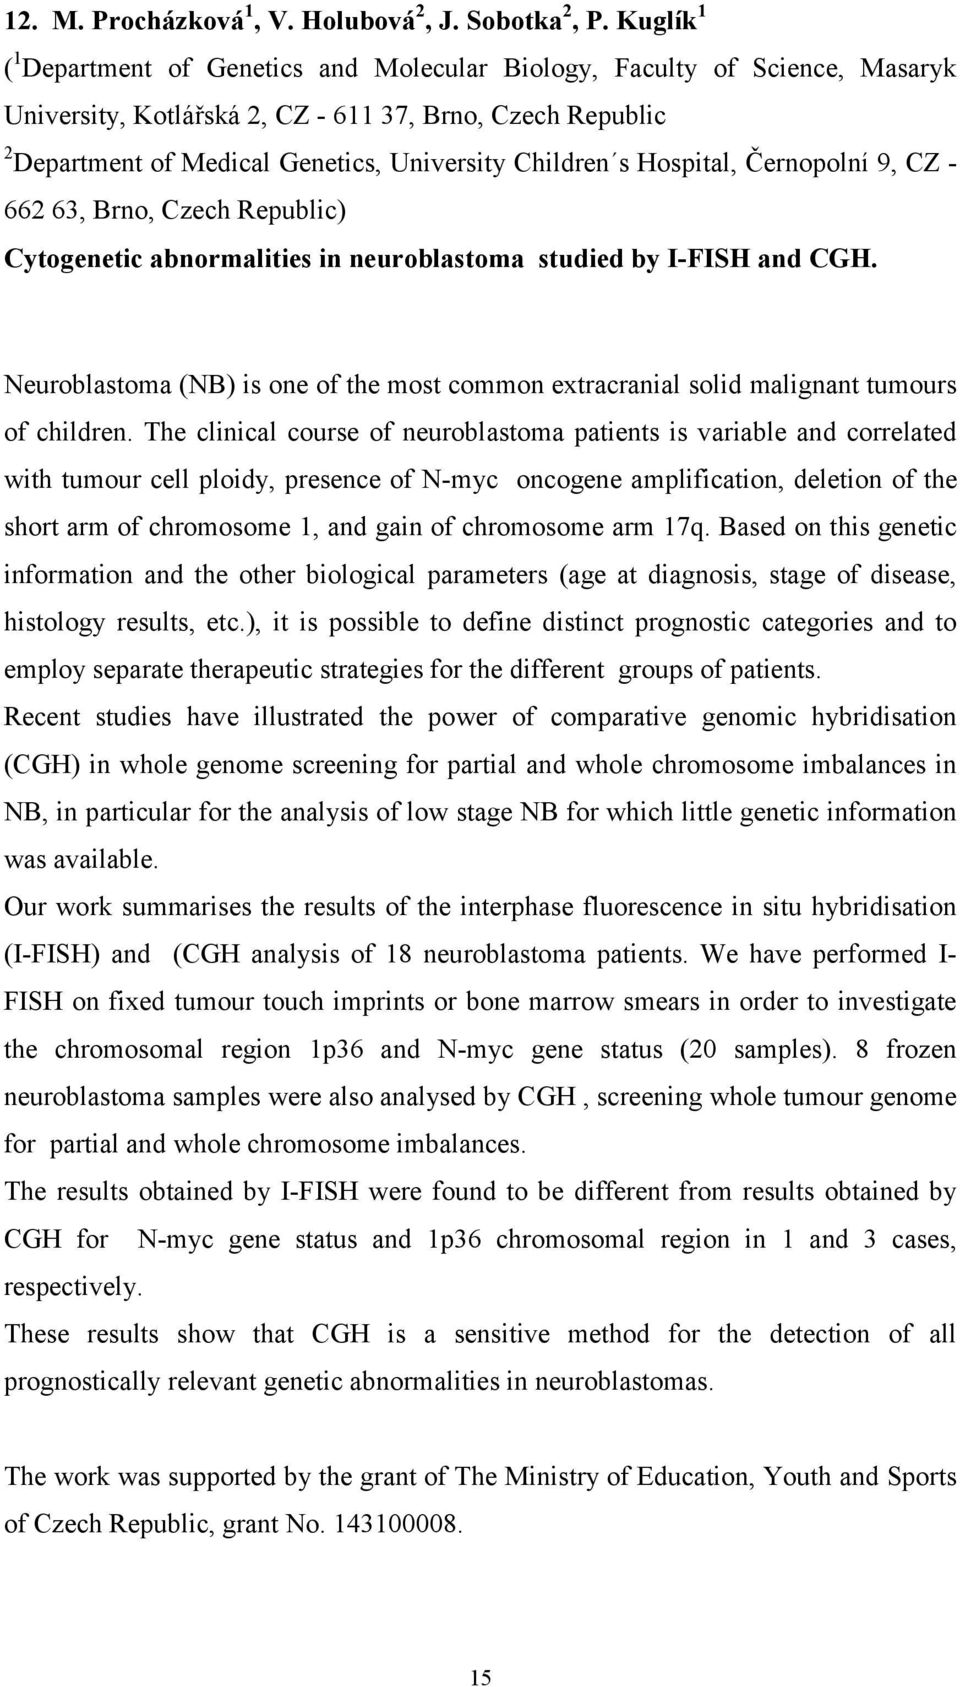 s Hospital, Černopolní 9, CZ - 662 63, Brno, Czech Republic) Cytogenetic abnormalities in neuroblastoma studied by I-FISH and CGH.